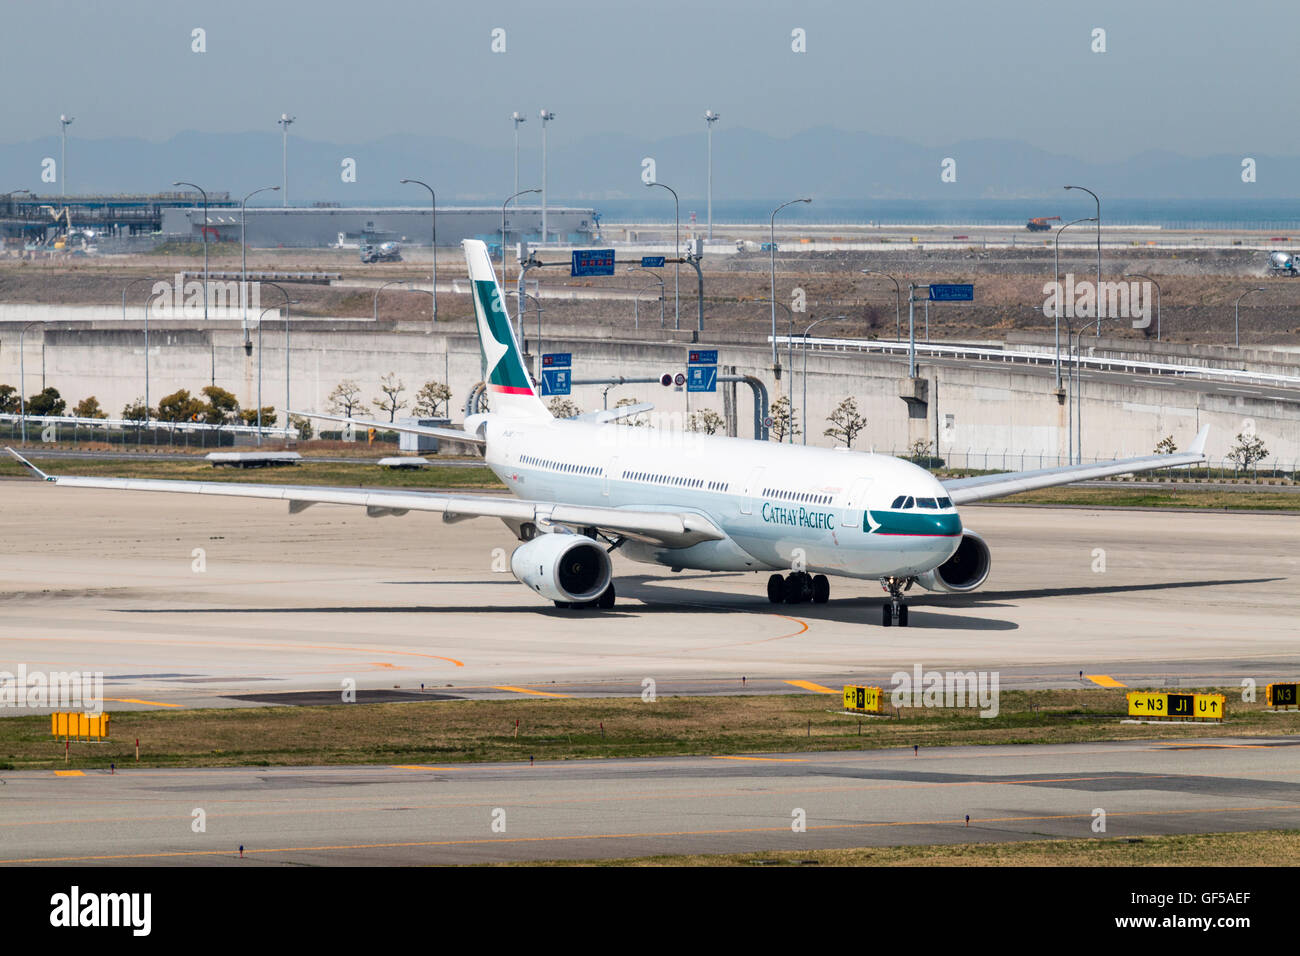 Japan, Kansai airport, KIX. Cathay Pacific Boeing 777-300 ER, B-LBE, taxiing and turning on apron around main runway. - Stock Image